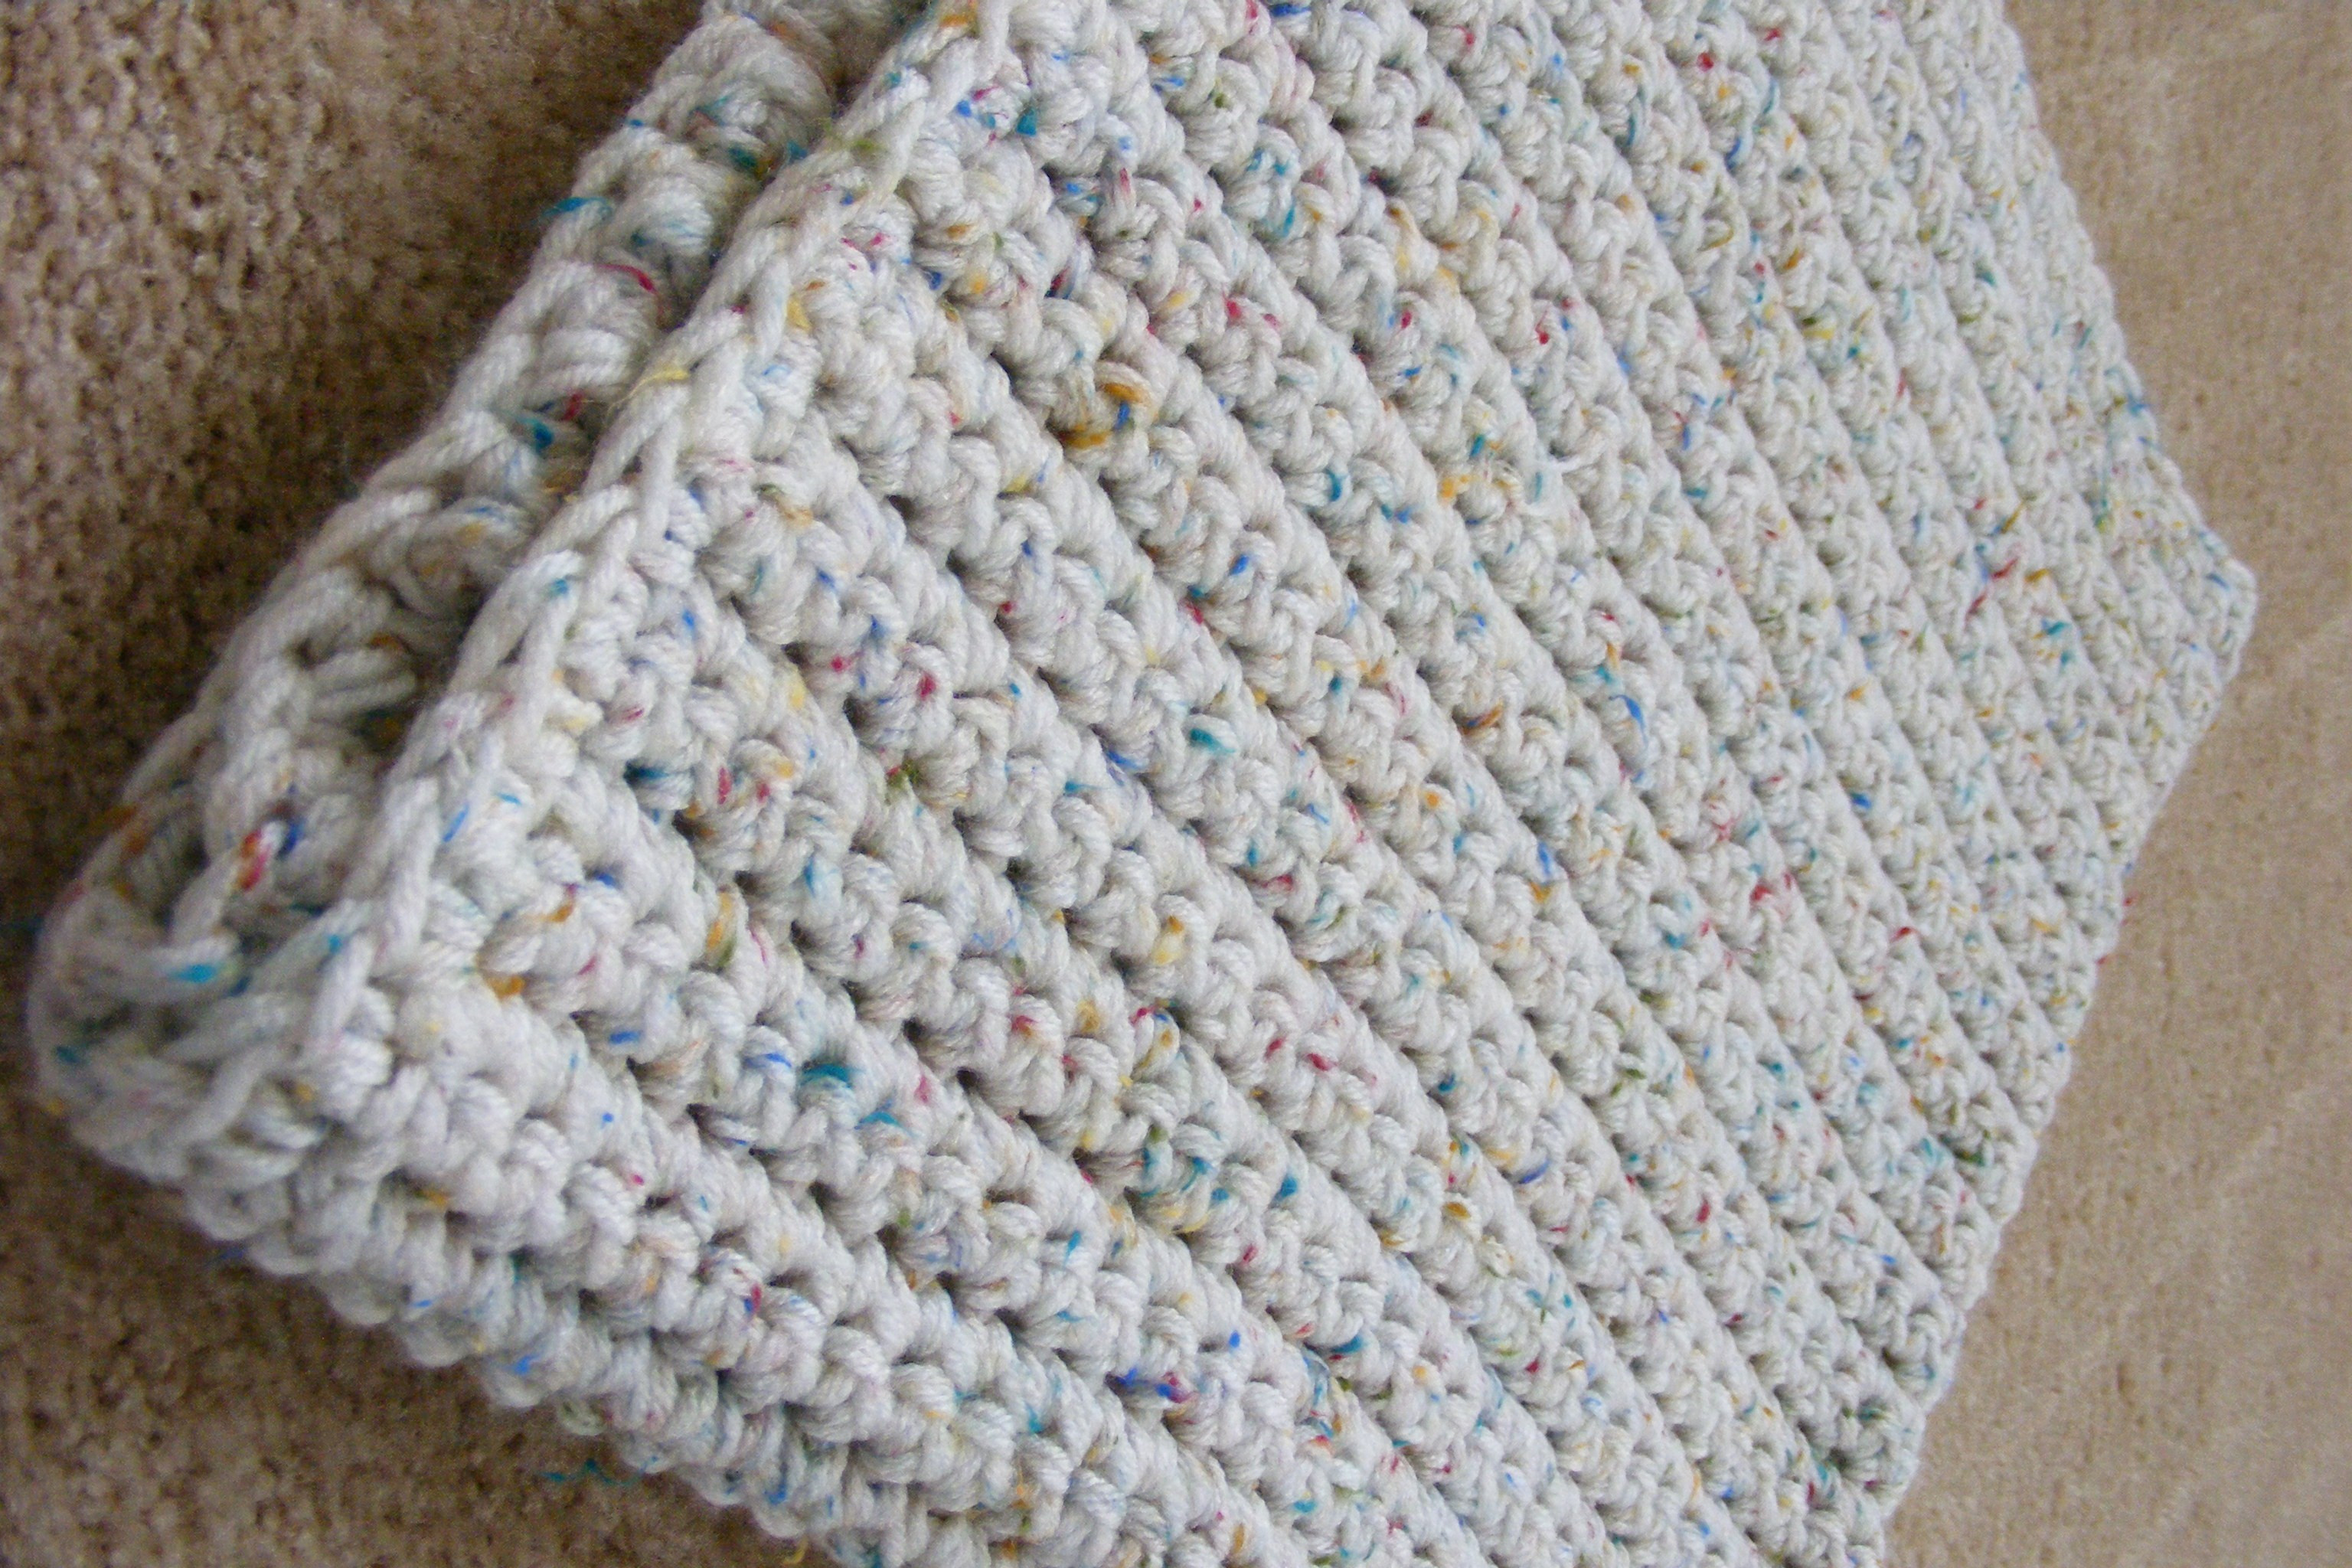 Luxury Easy Knitting Patterns for Blankets for Beginners Easy Knitting for Beginners Of Charming 43 Images Easy Knitting for Beginners